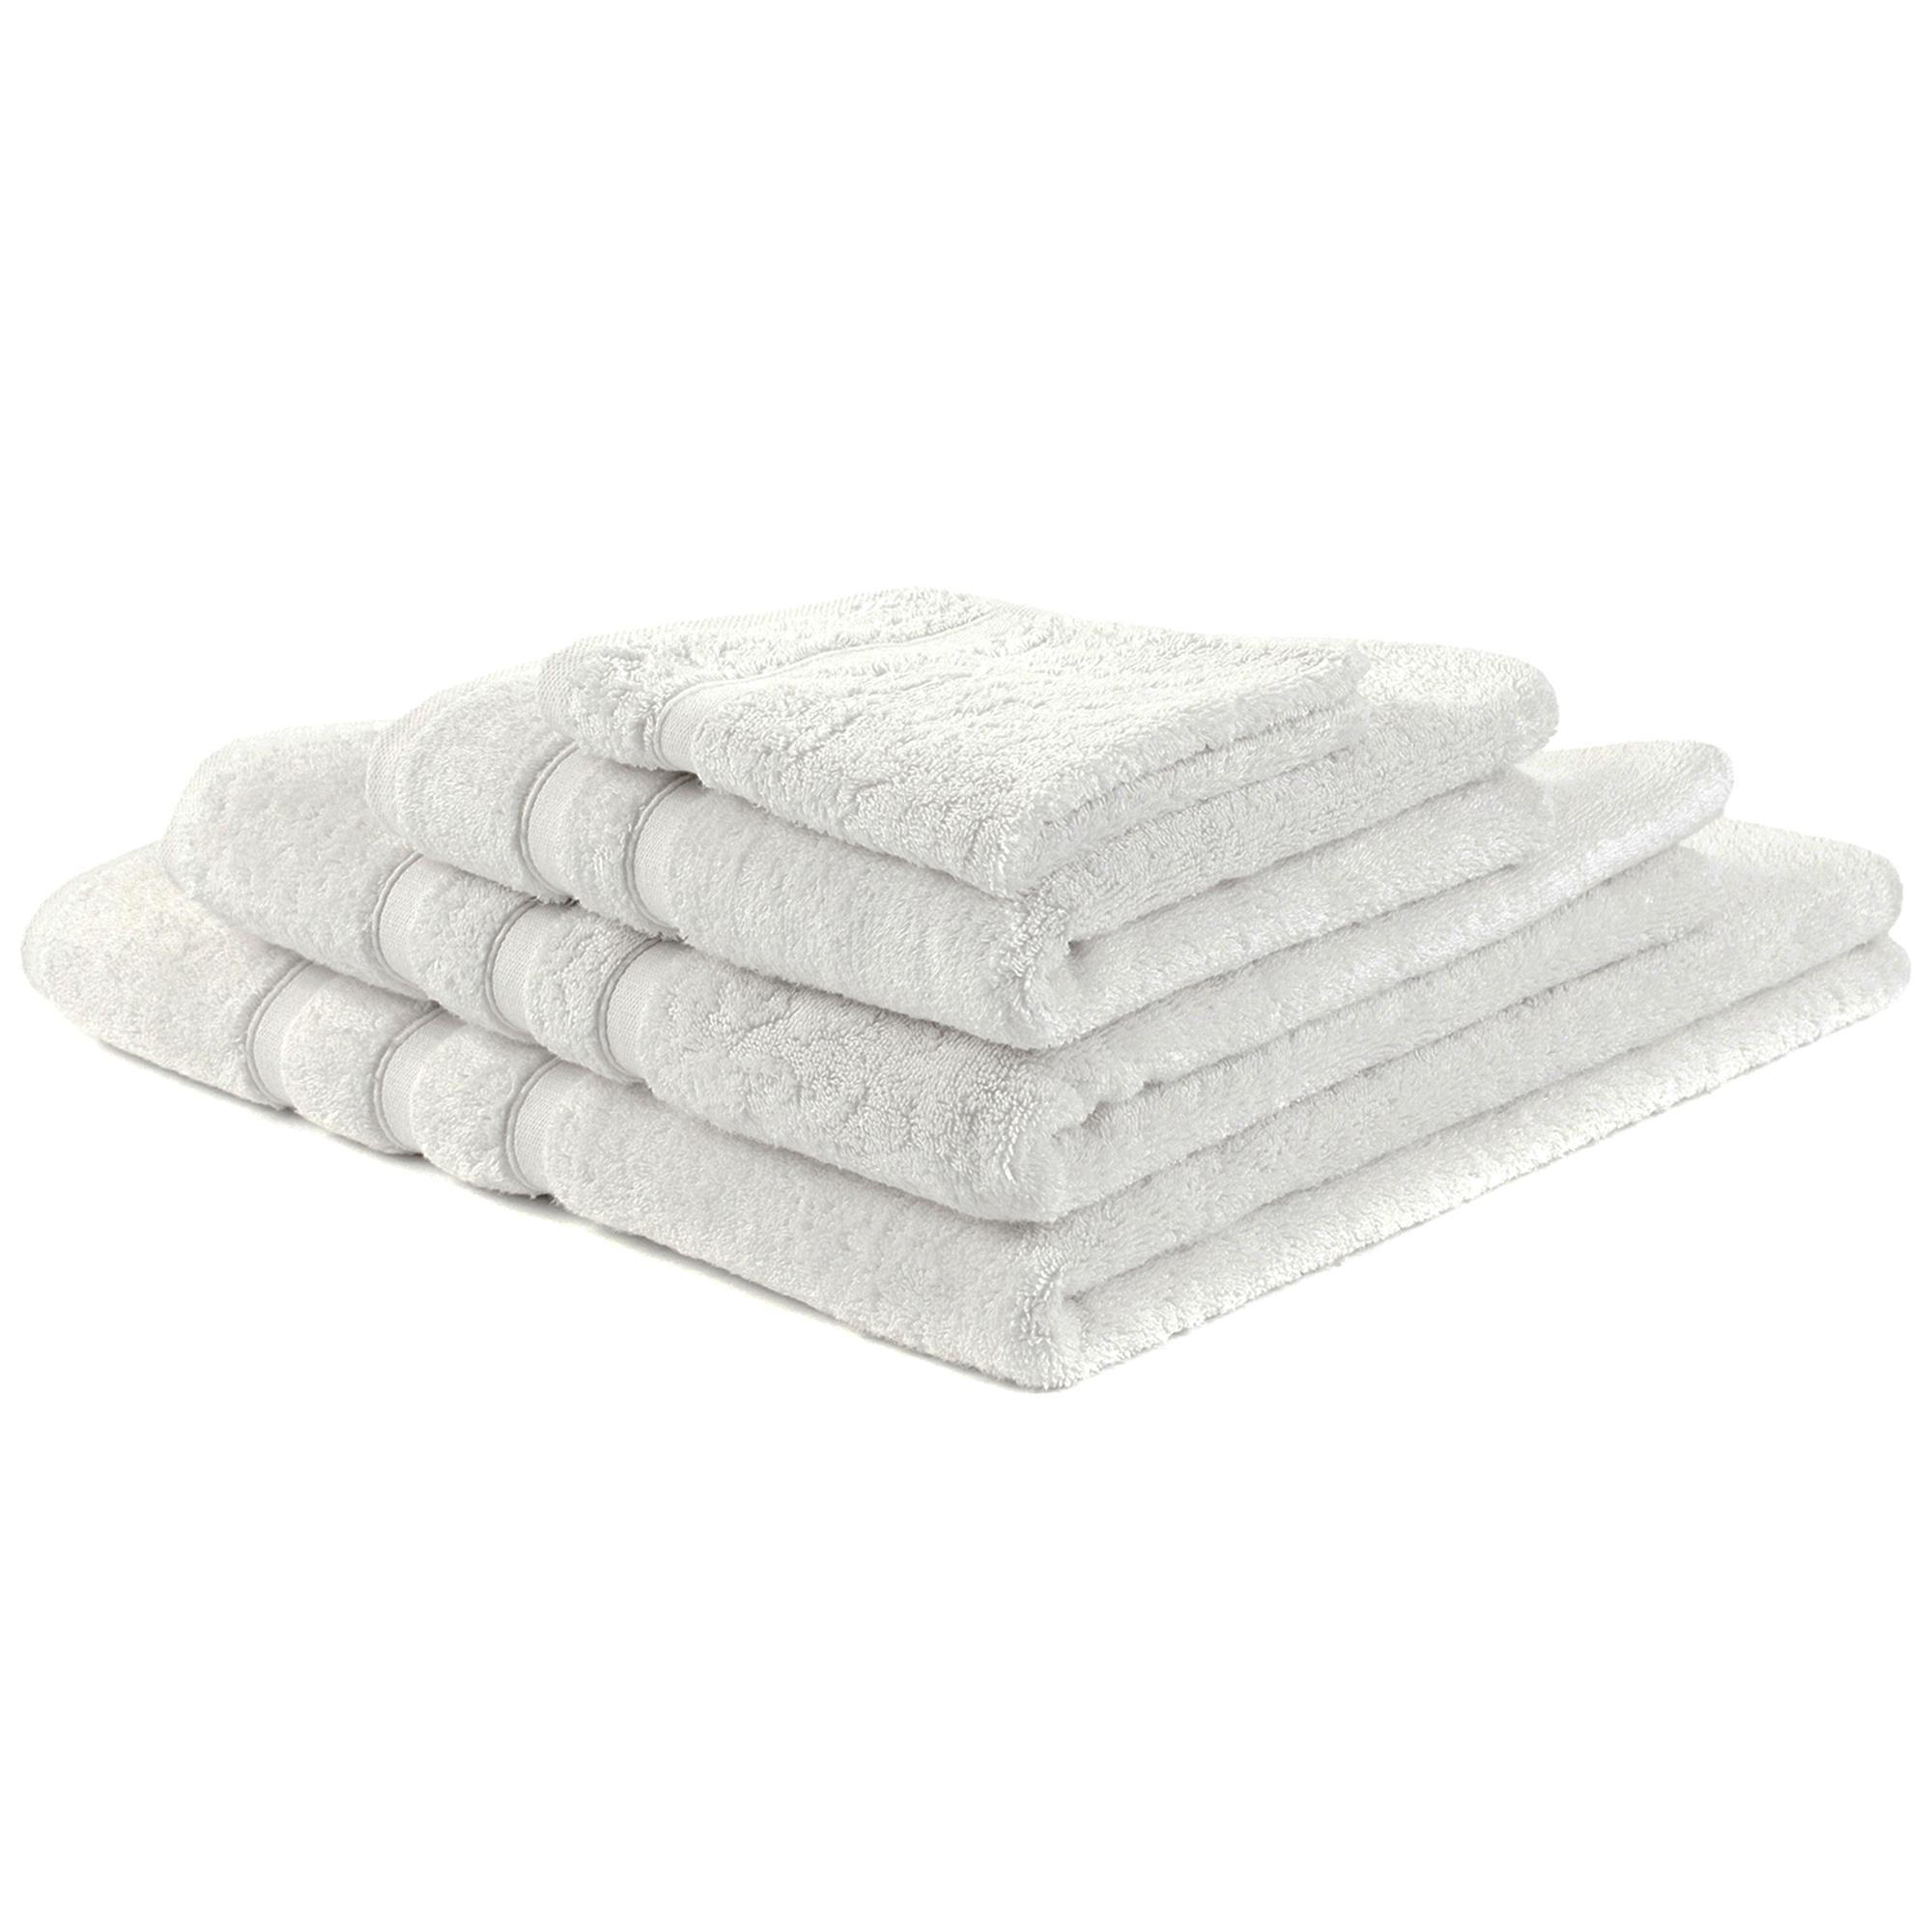 Photo of Hotel white pima towel white